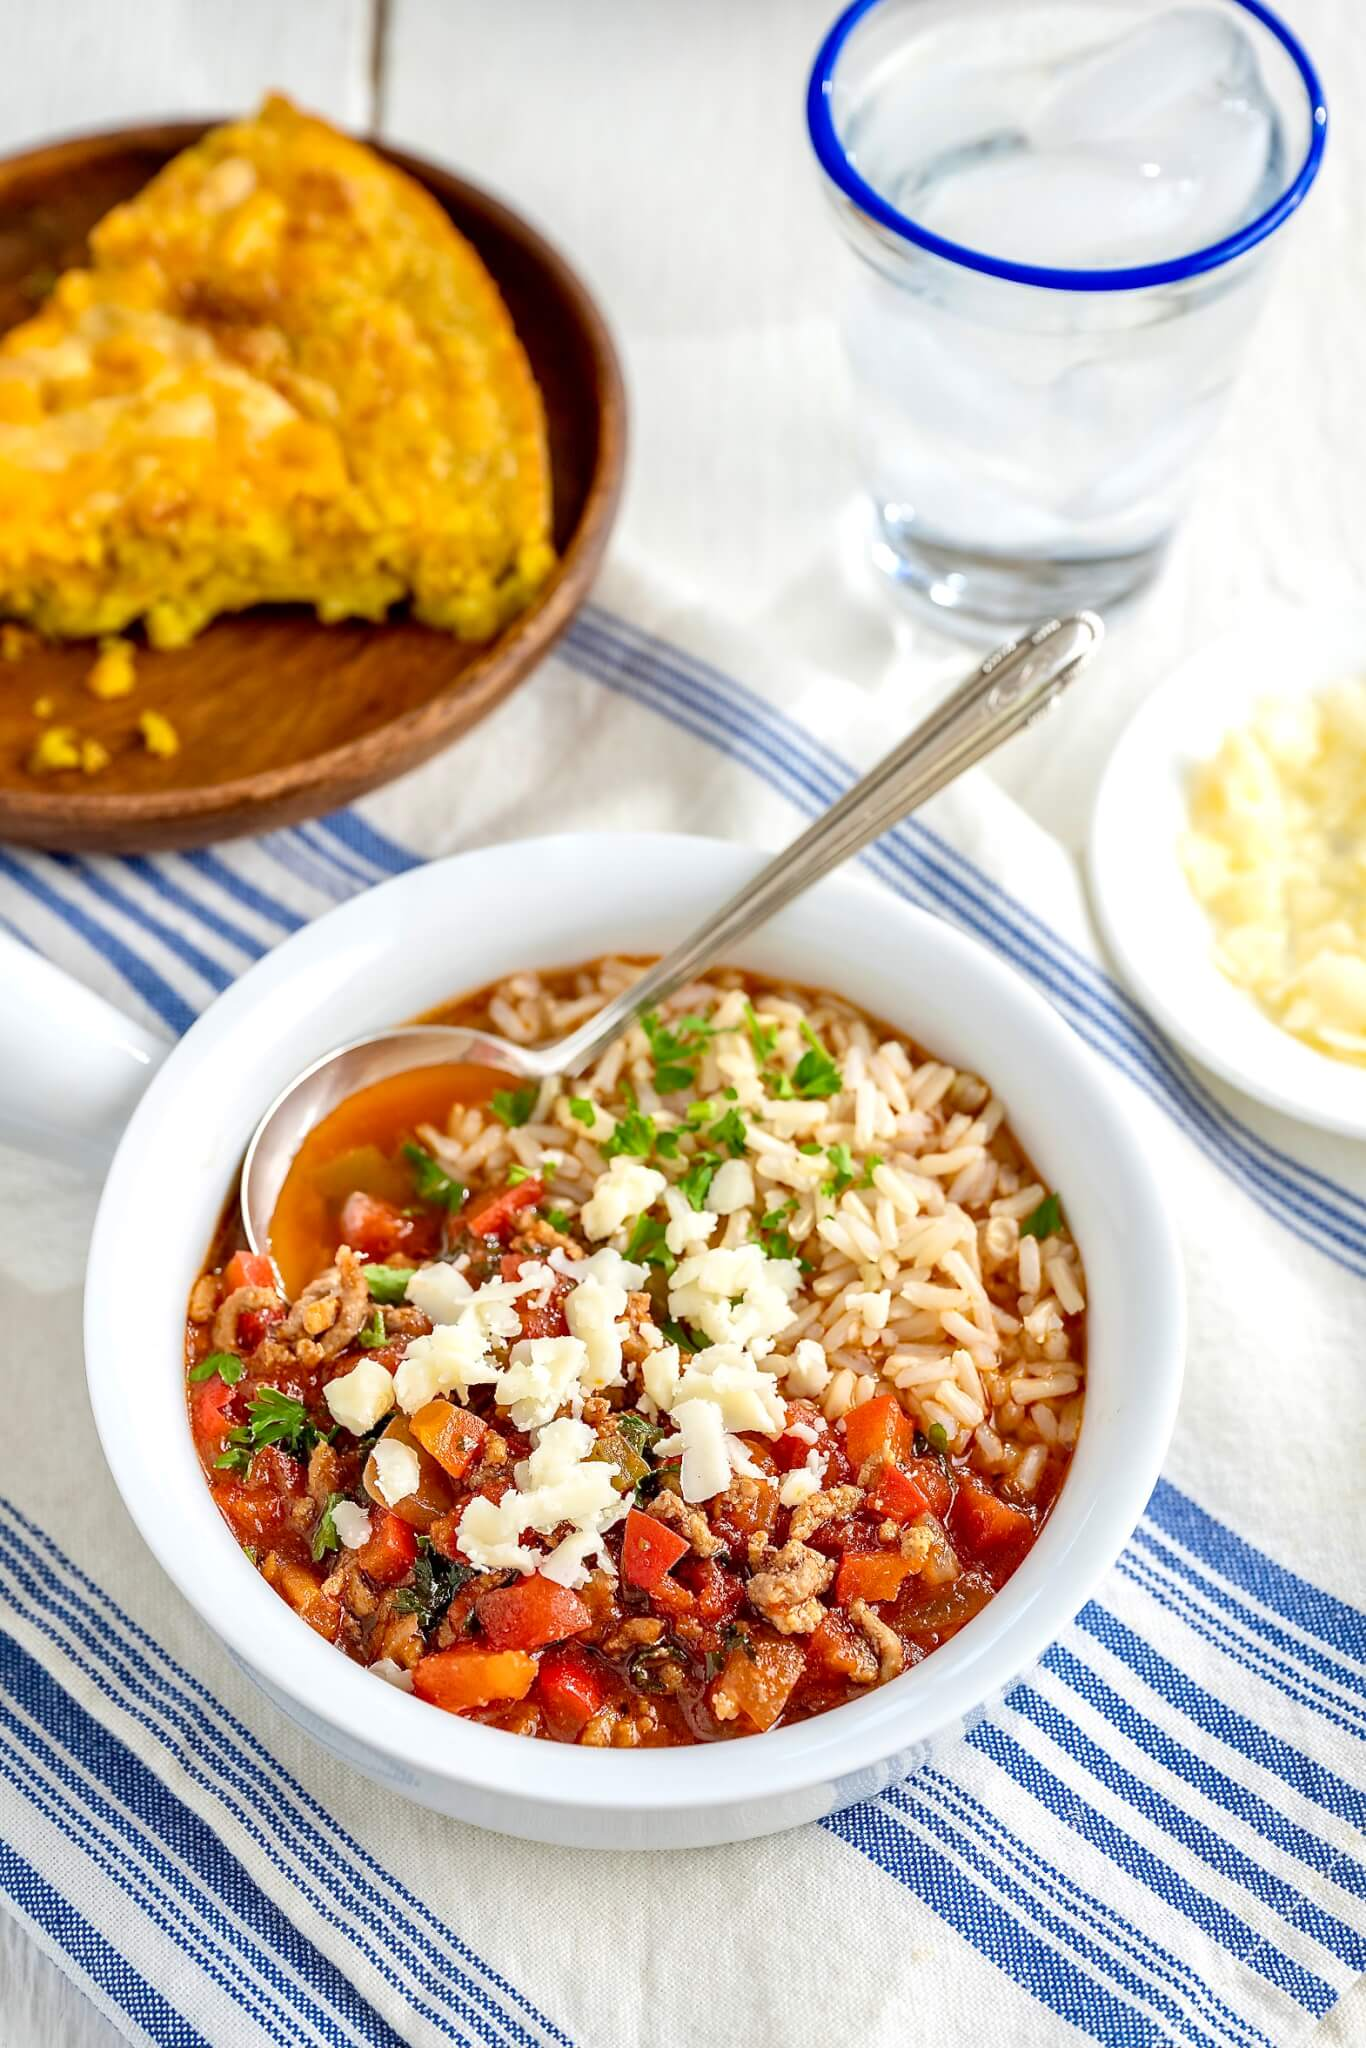 This one-pot meal offers all the hearty, wholesome deliciousness of traditional stuffed peppers in a soul-warming soup!